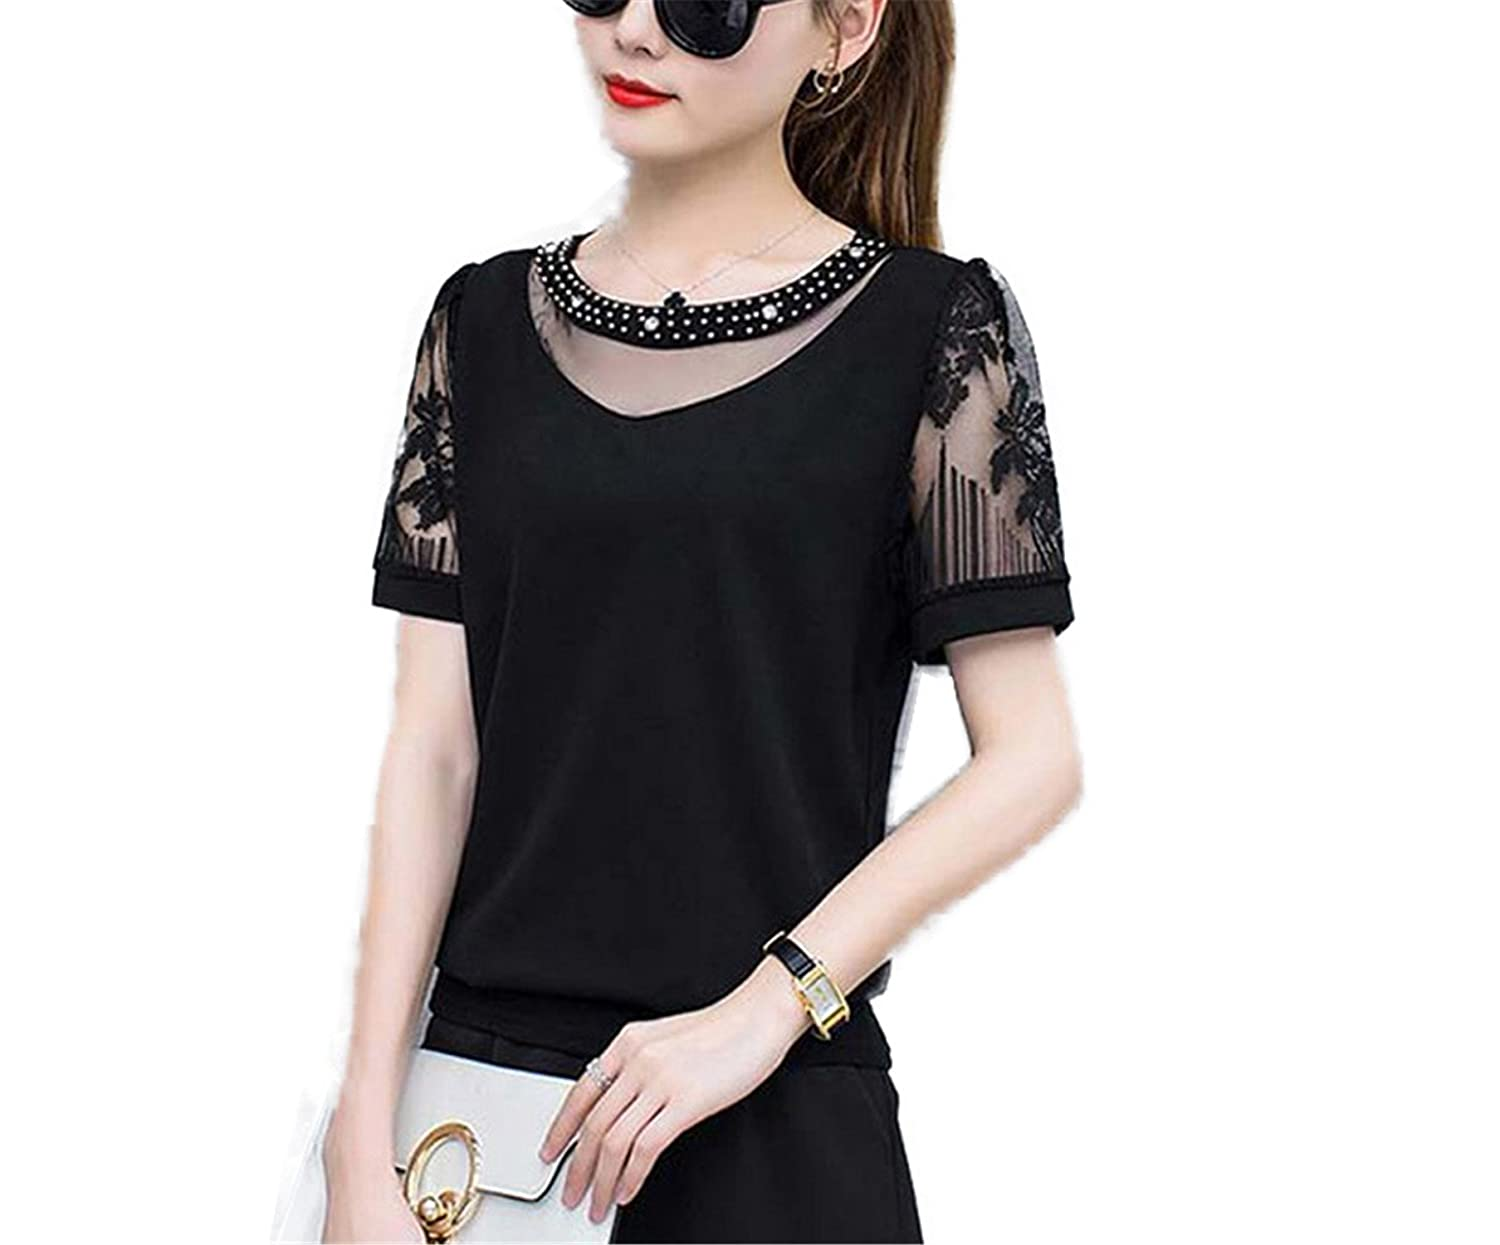 OUXIANGJU Summer Women Blouses Lace Patchwork Tops Plus Size Chiffon Short Sleeve Diamonds Shirts at Amazon Womens Clothing store: